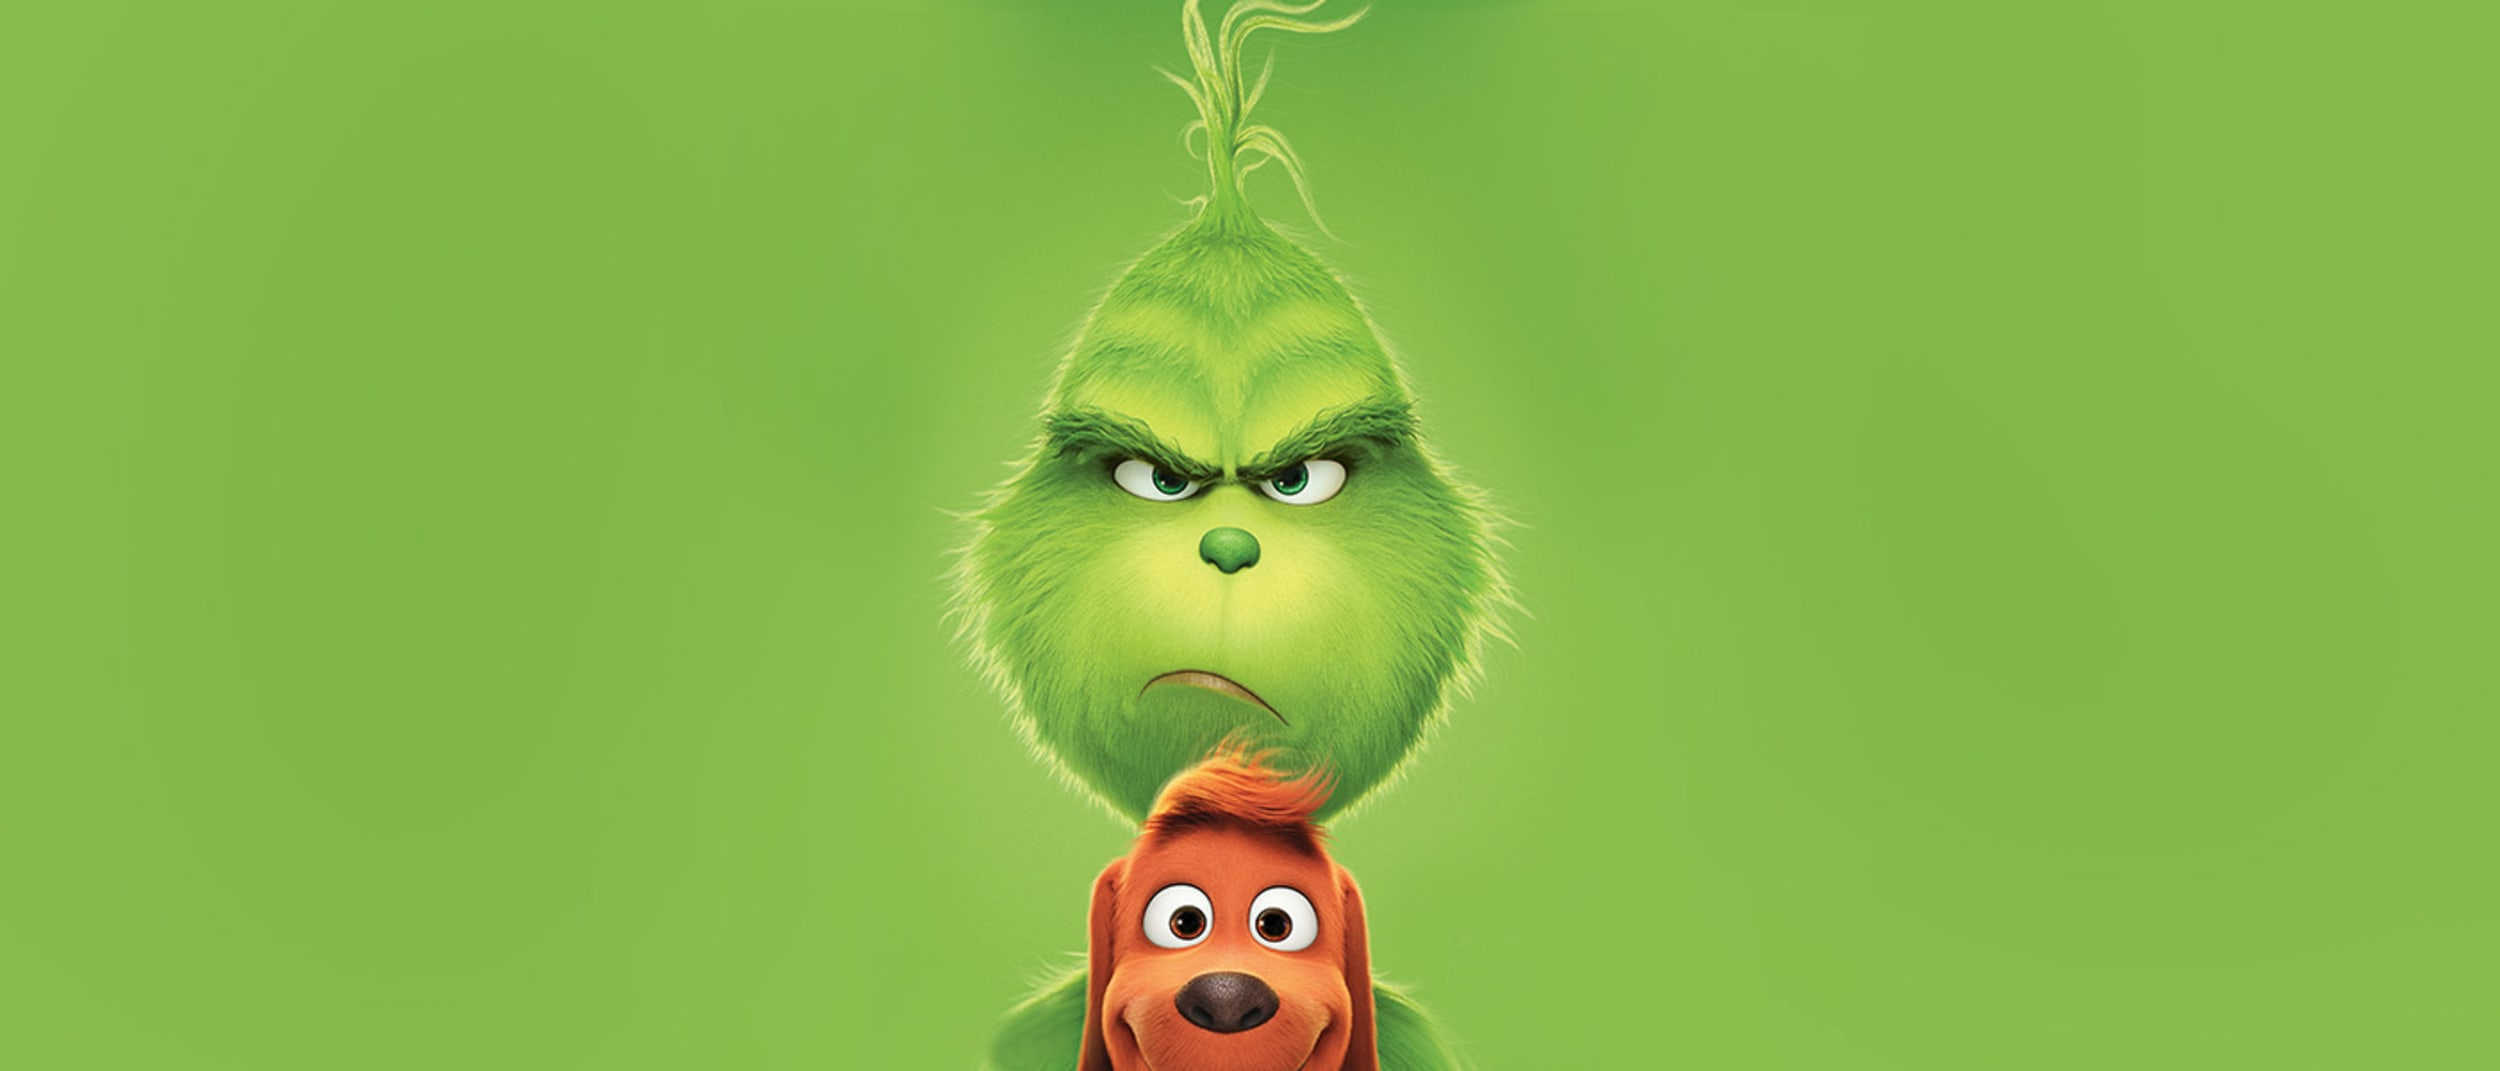 HOYTS: Family Preview Screening of The Grinch